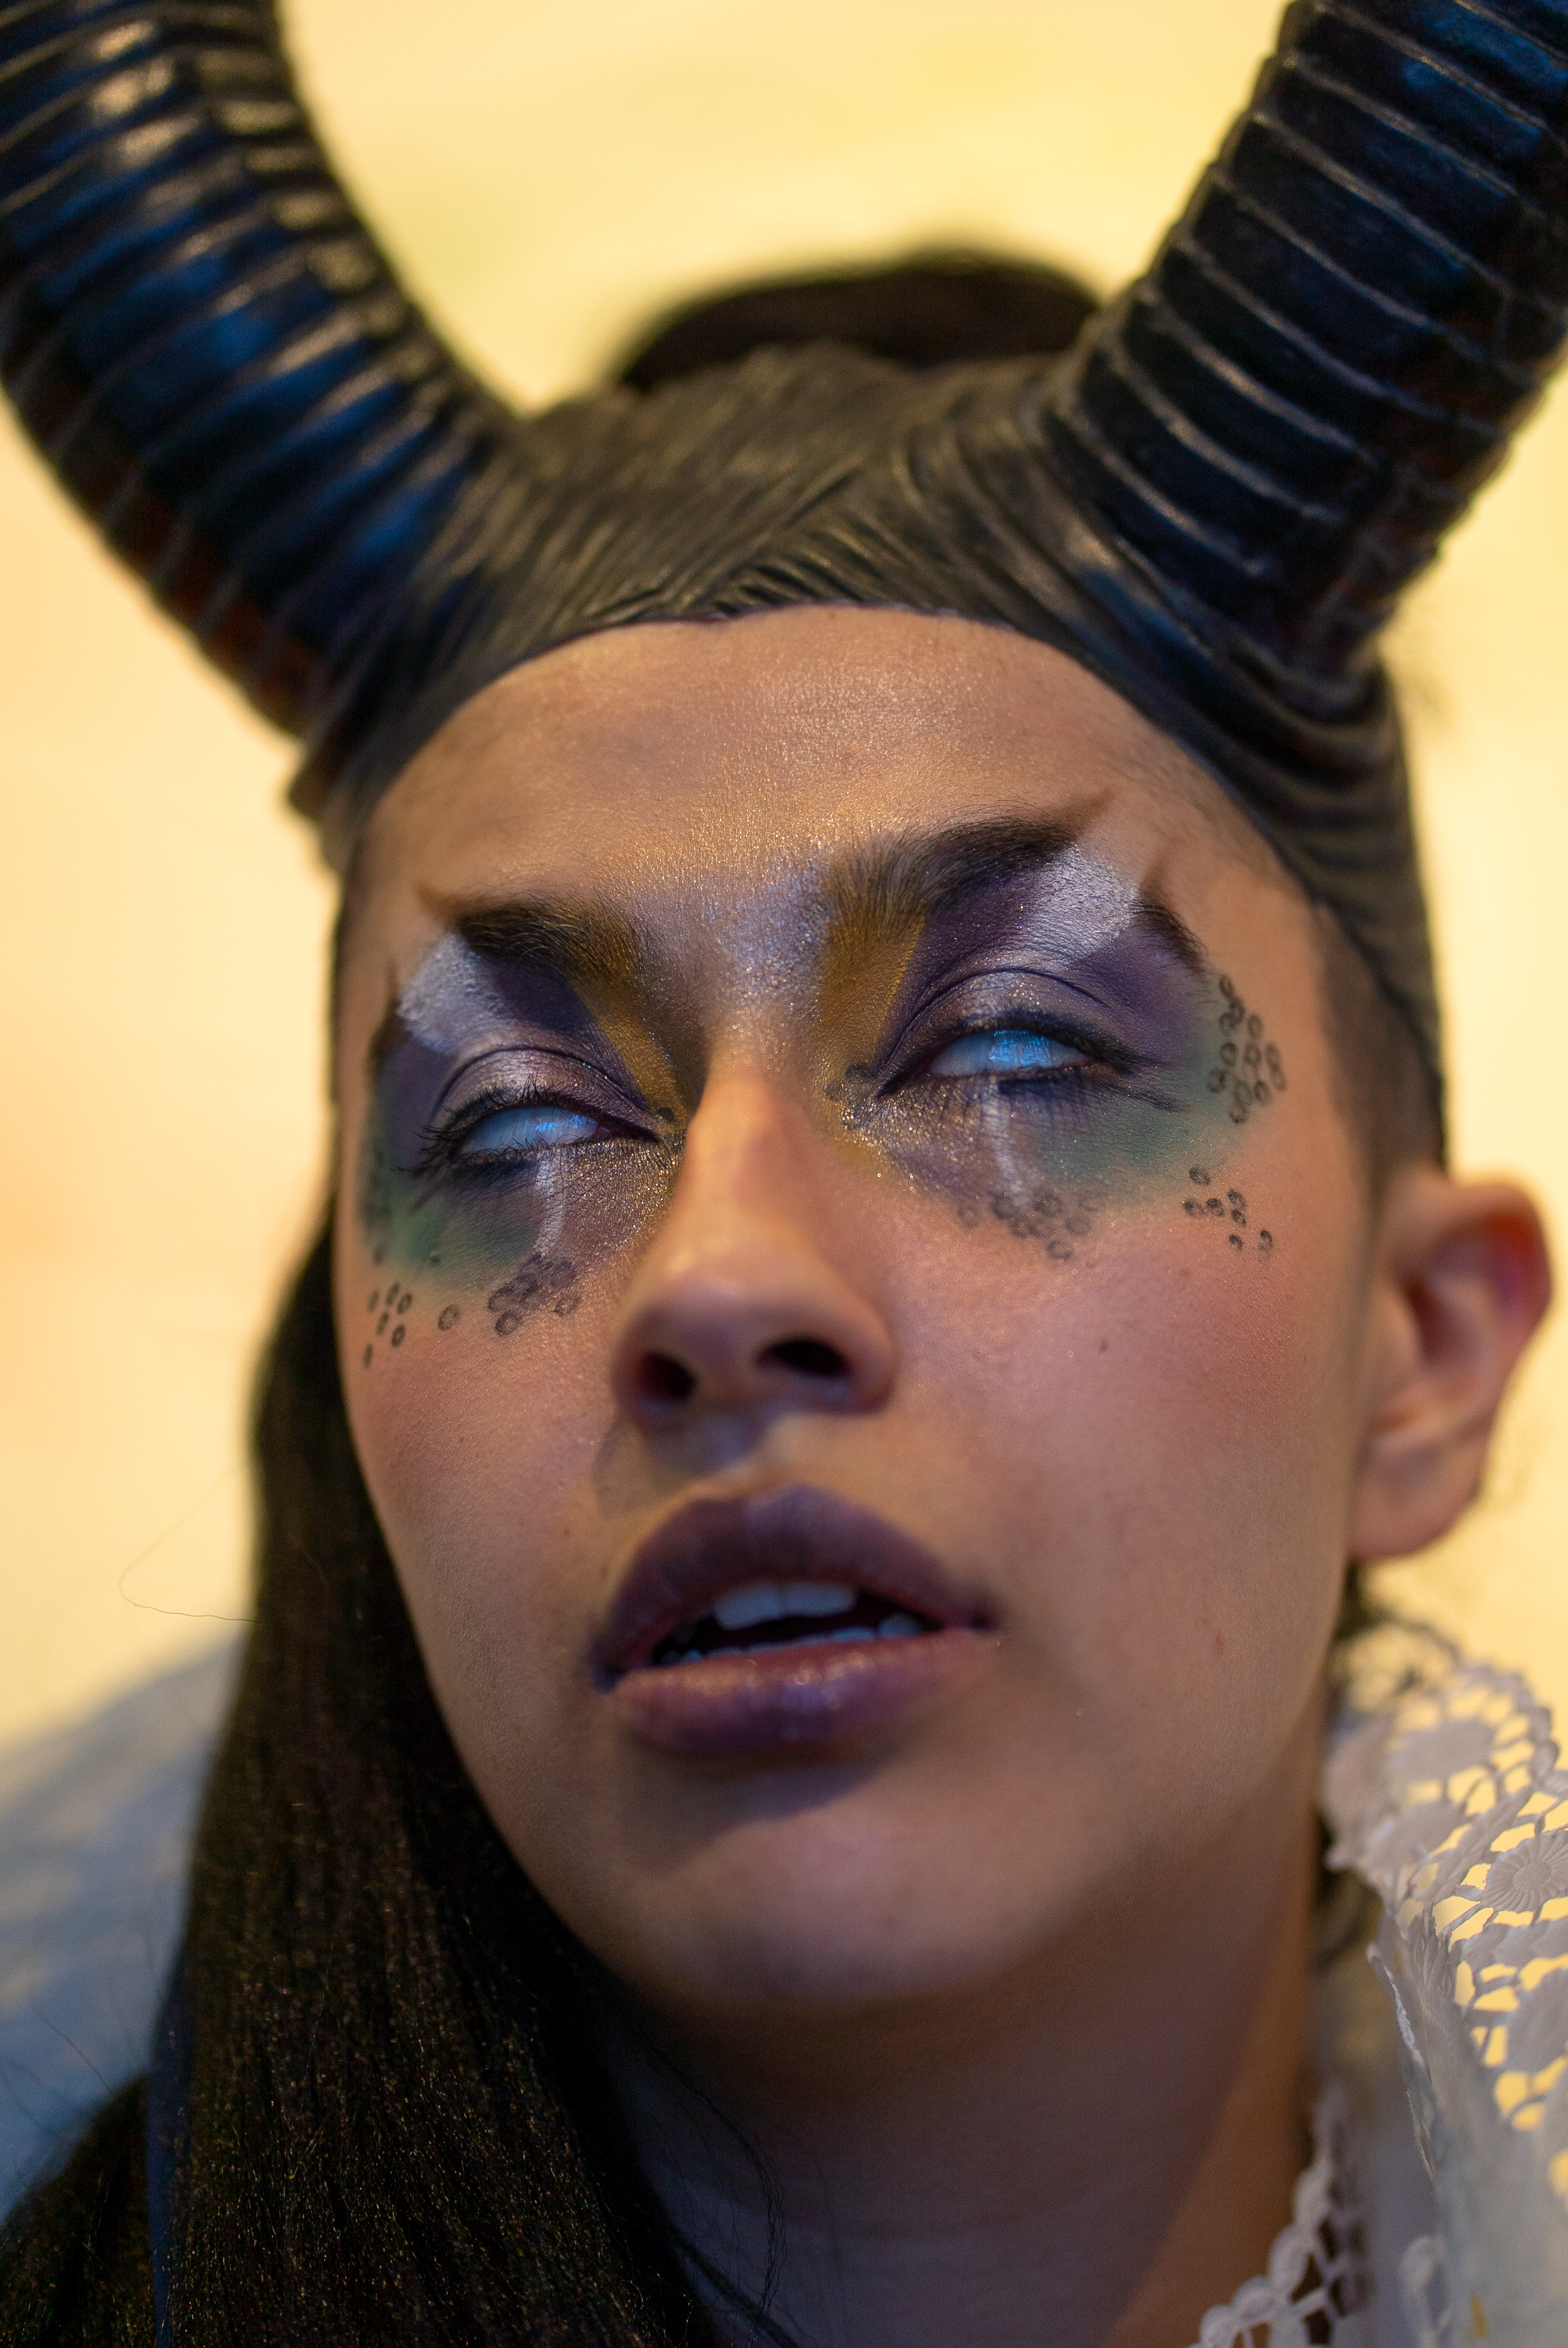 The photo is a close-up of a person with two plastic horns as headgear and imaginative eye make-up in purple, green, white and black with glitter. They have opened their mouth slightly. Their eyeballs are turned upwards and slightly opened, so that only the white of the eye is visible.